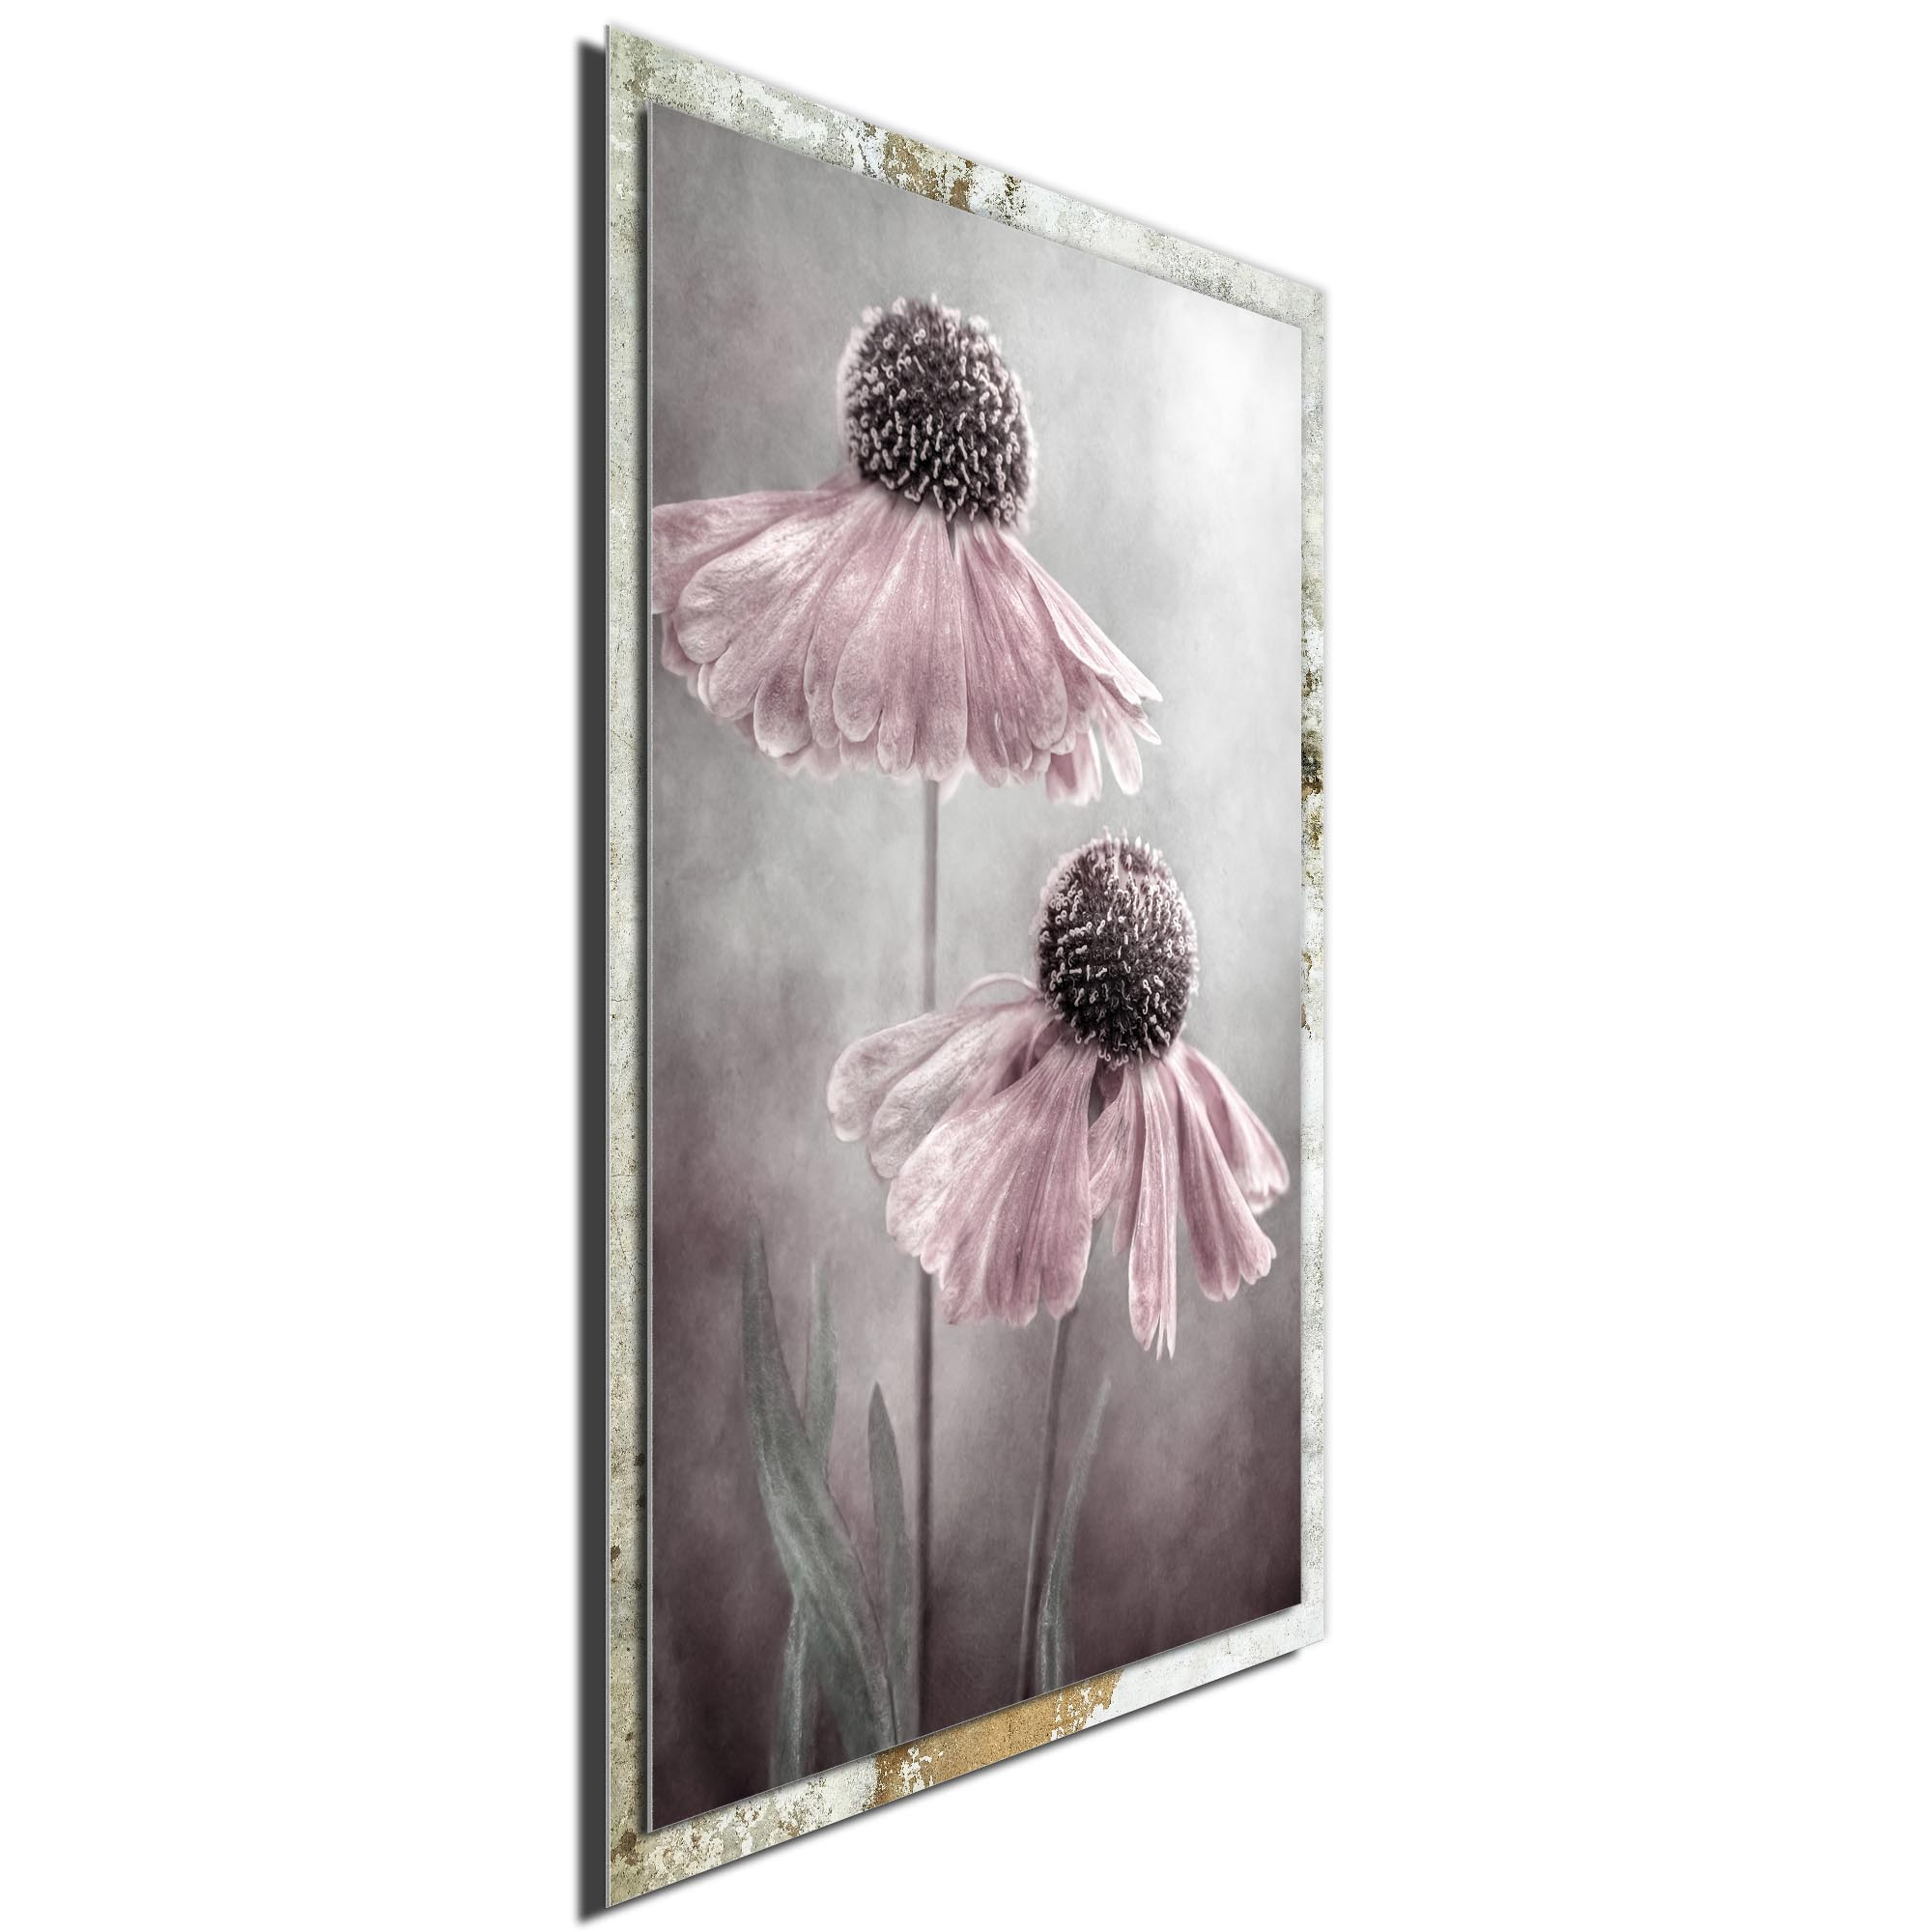 Duet by Mandy Disher - Modern Farmhouse Floral on Metal - Image 2